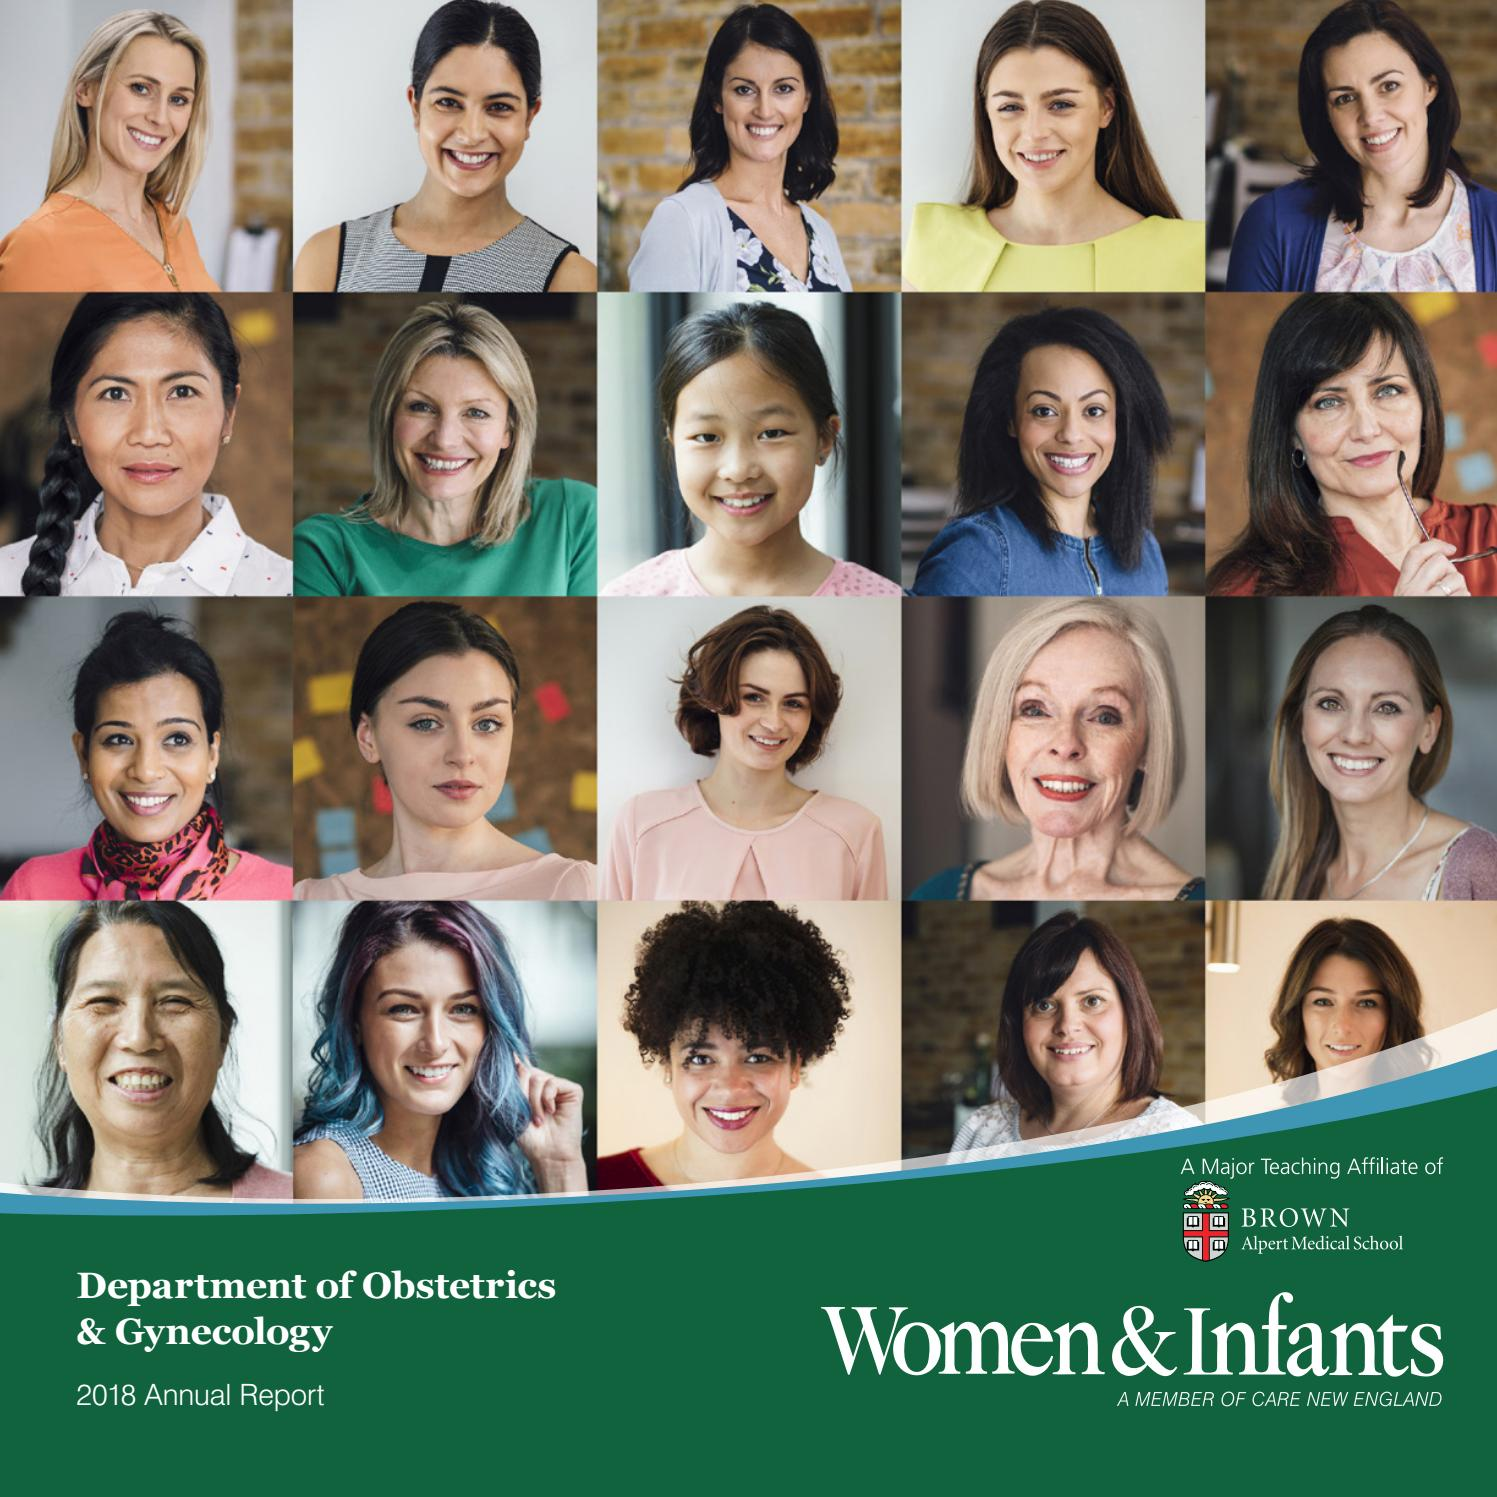 Women & Infants Department of Obstetrics and Gynecology 2018